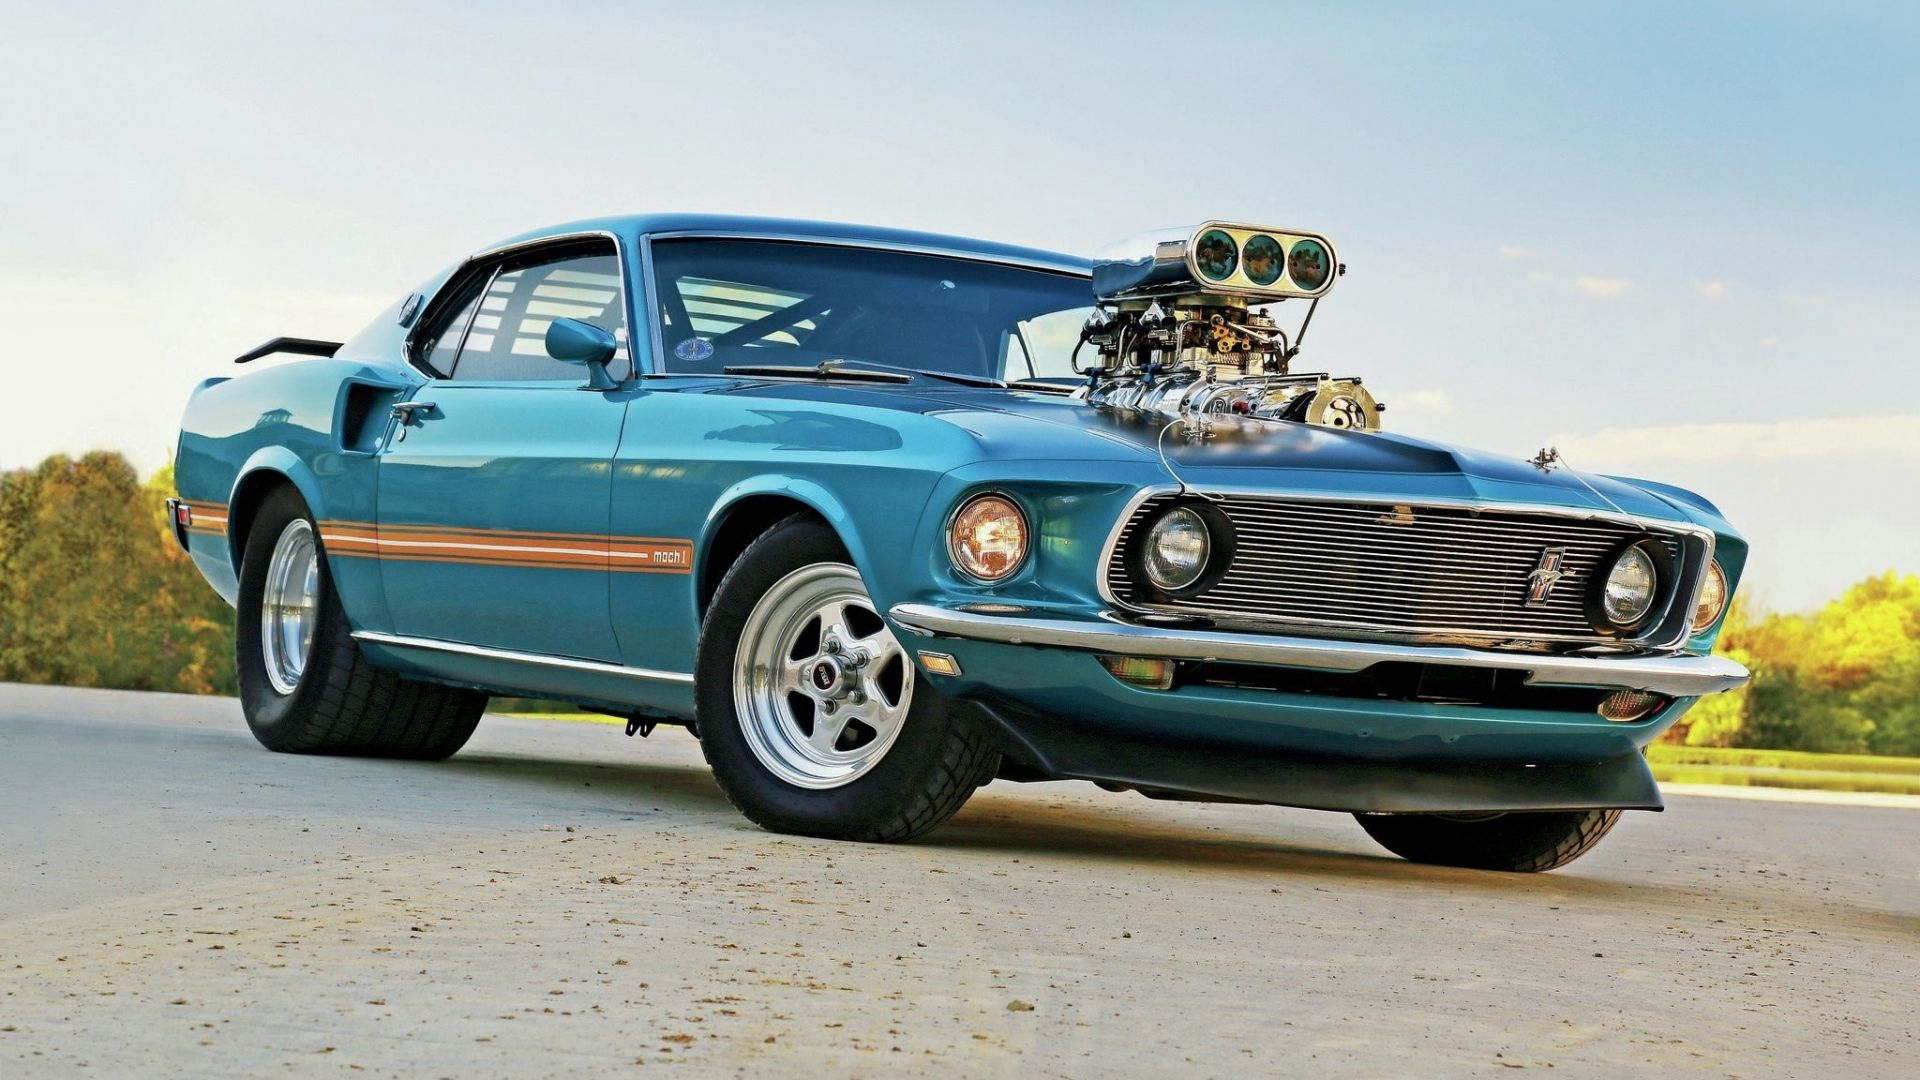 1969 Ford Mustang Muscle Car Wallpapers And Backgrounds Best 1971 Gt Convertible App